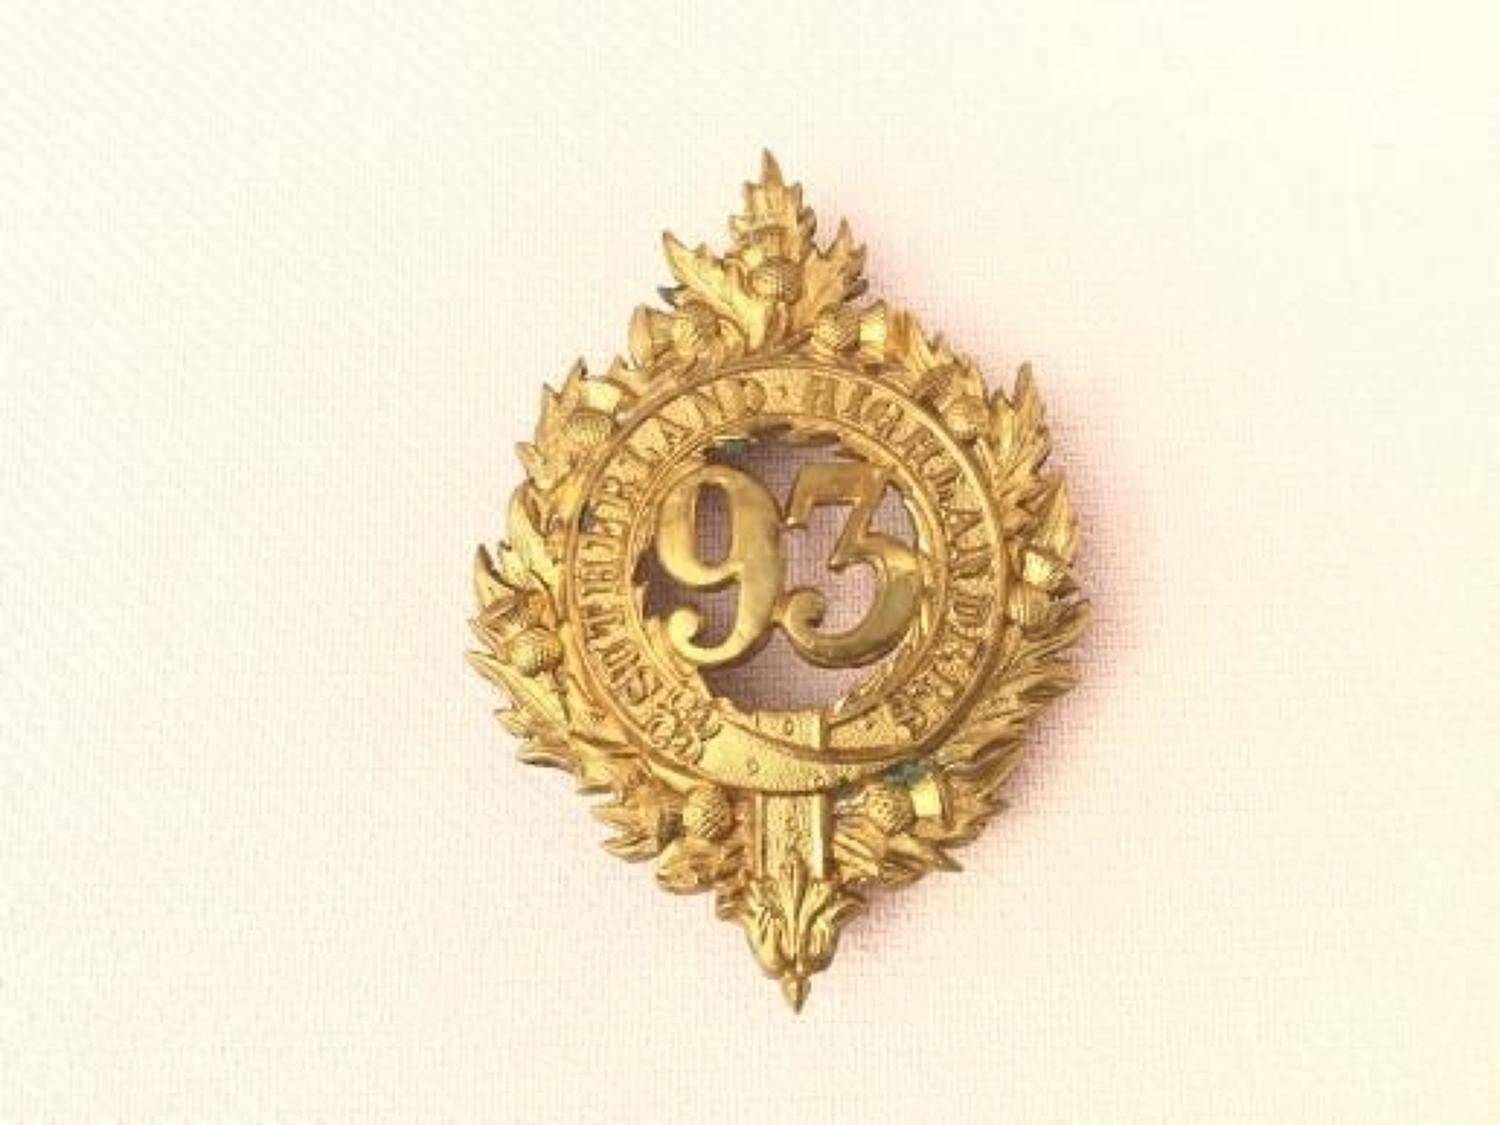 93rd Regiment of Foot (Sutherland Highlanders) Glengarry Badge.